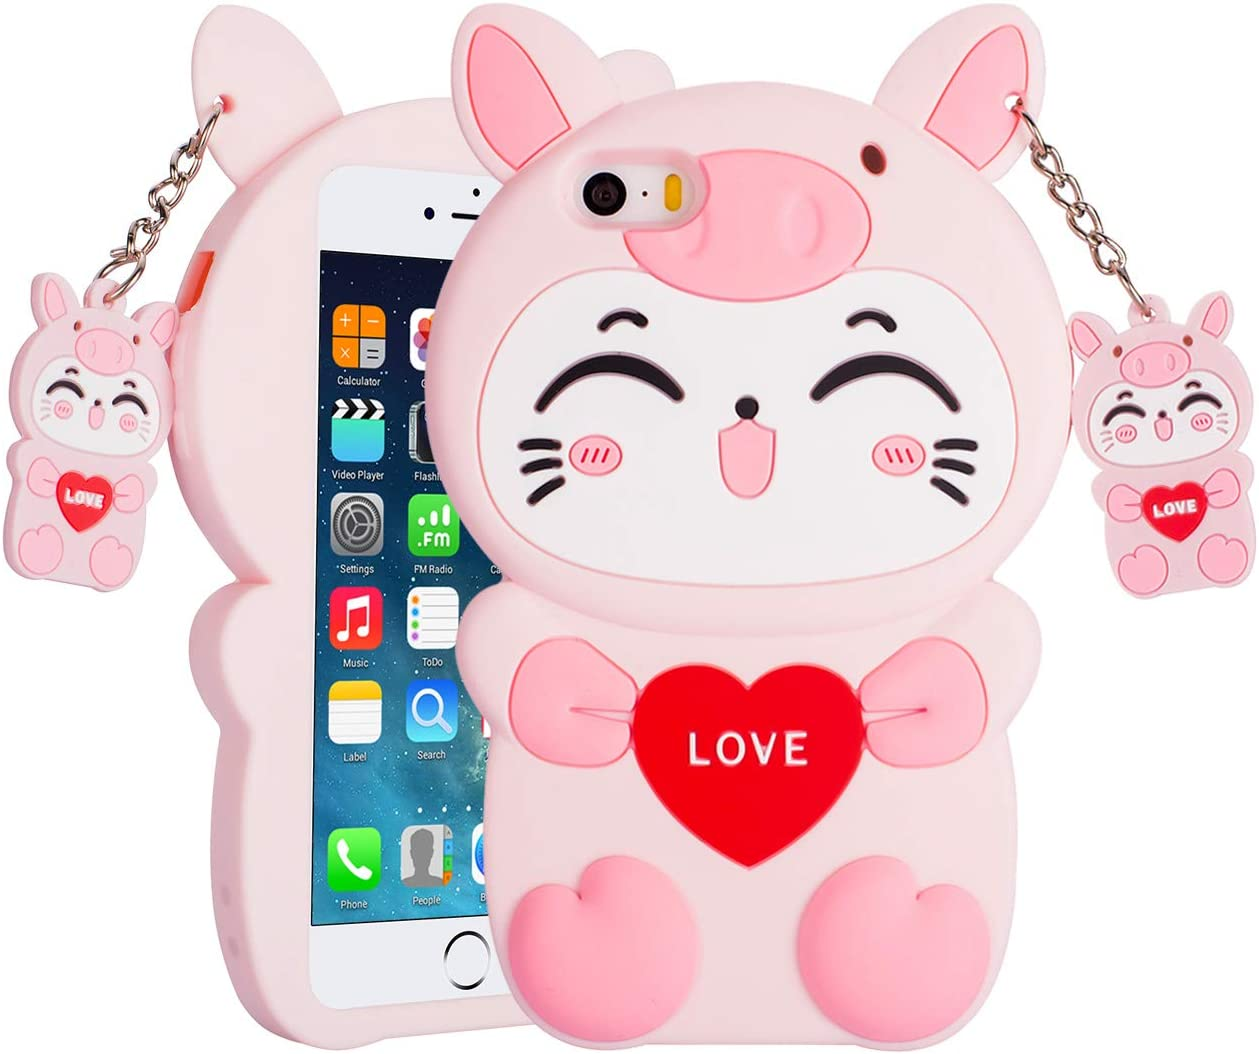 3D Pink Cat Phone Case for iPhone 5C/5S/5, Soft Silicone Rubber Kawaii Cute Cartoon Animal Shockproof Drop Protection Funny Unique Durable Bumper Case Cover